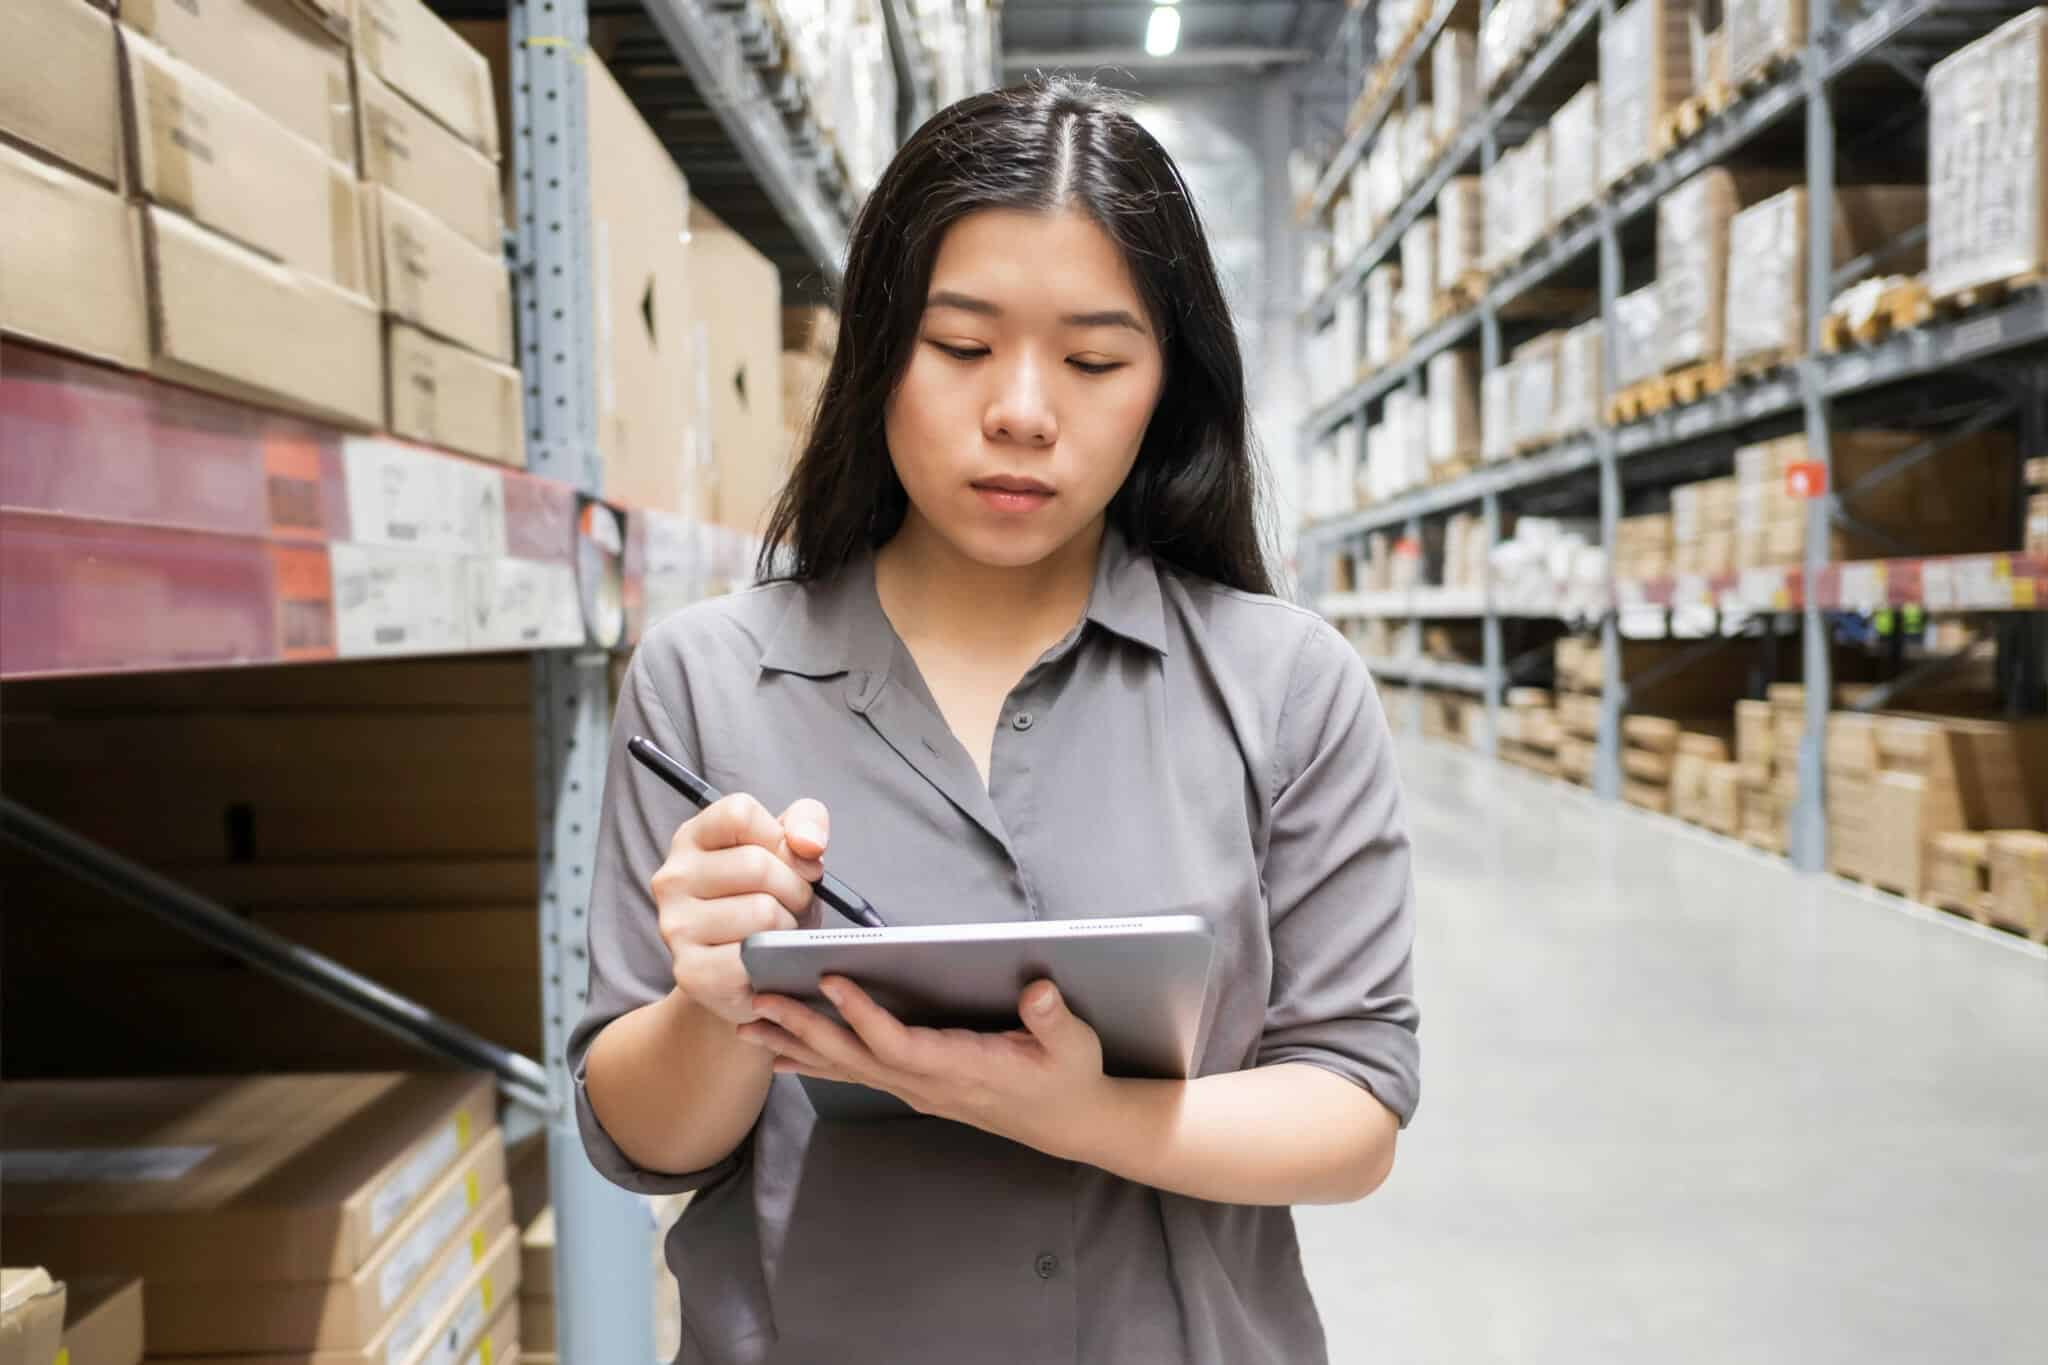 A woman conducts inventory counts in a warehouse.